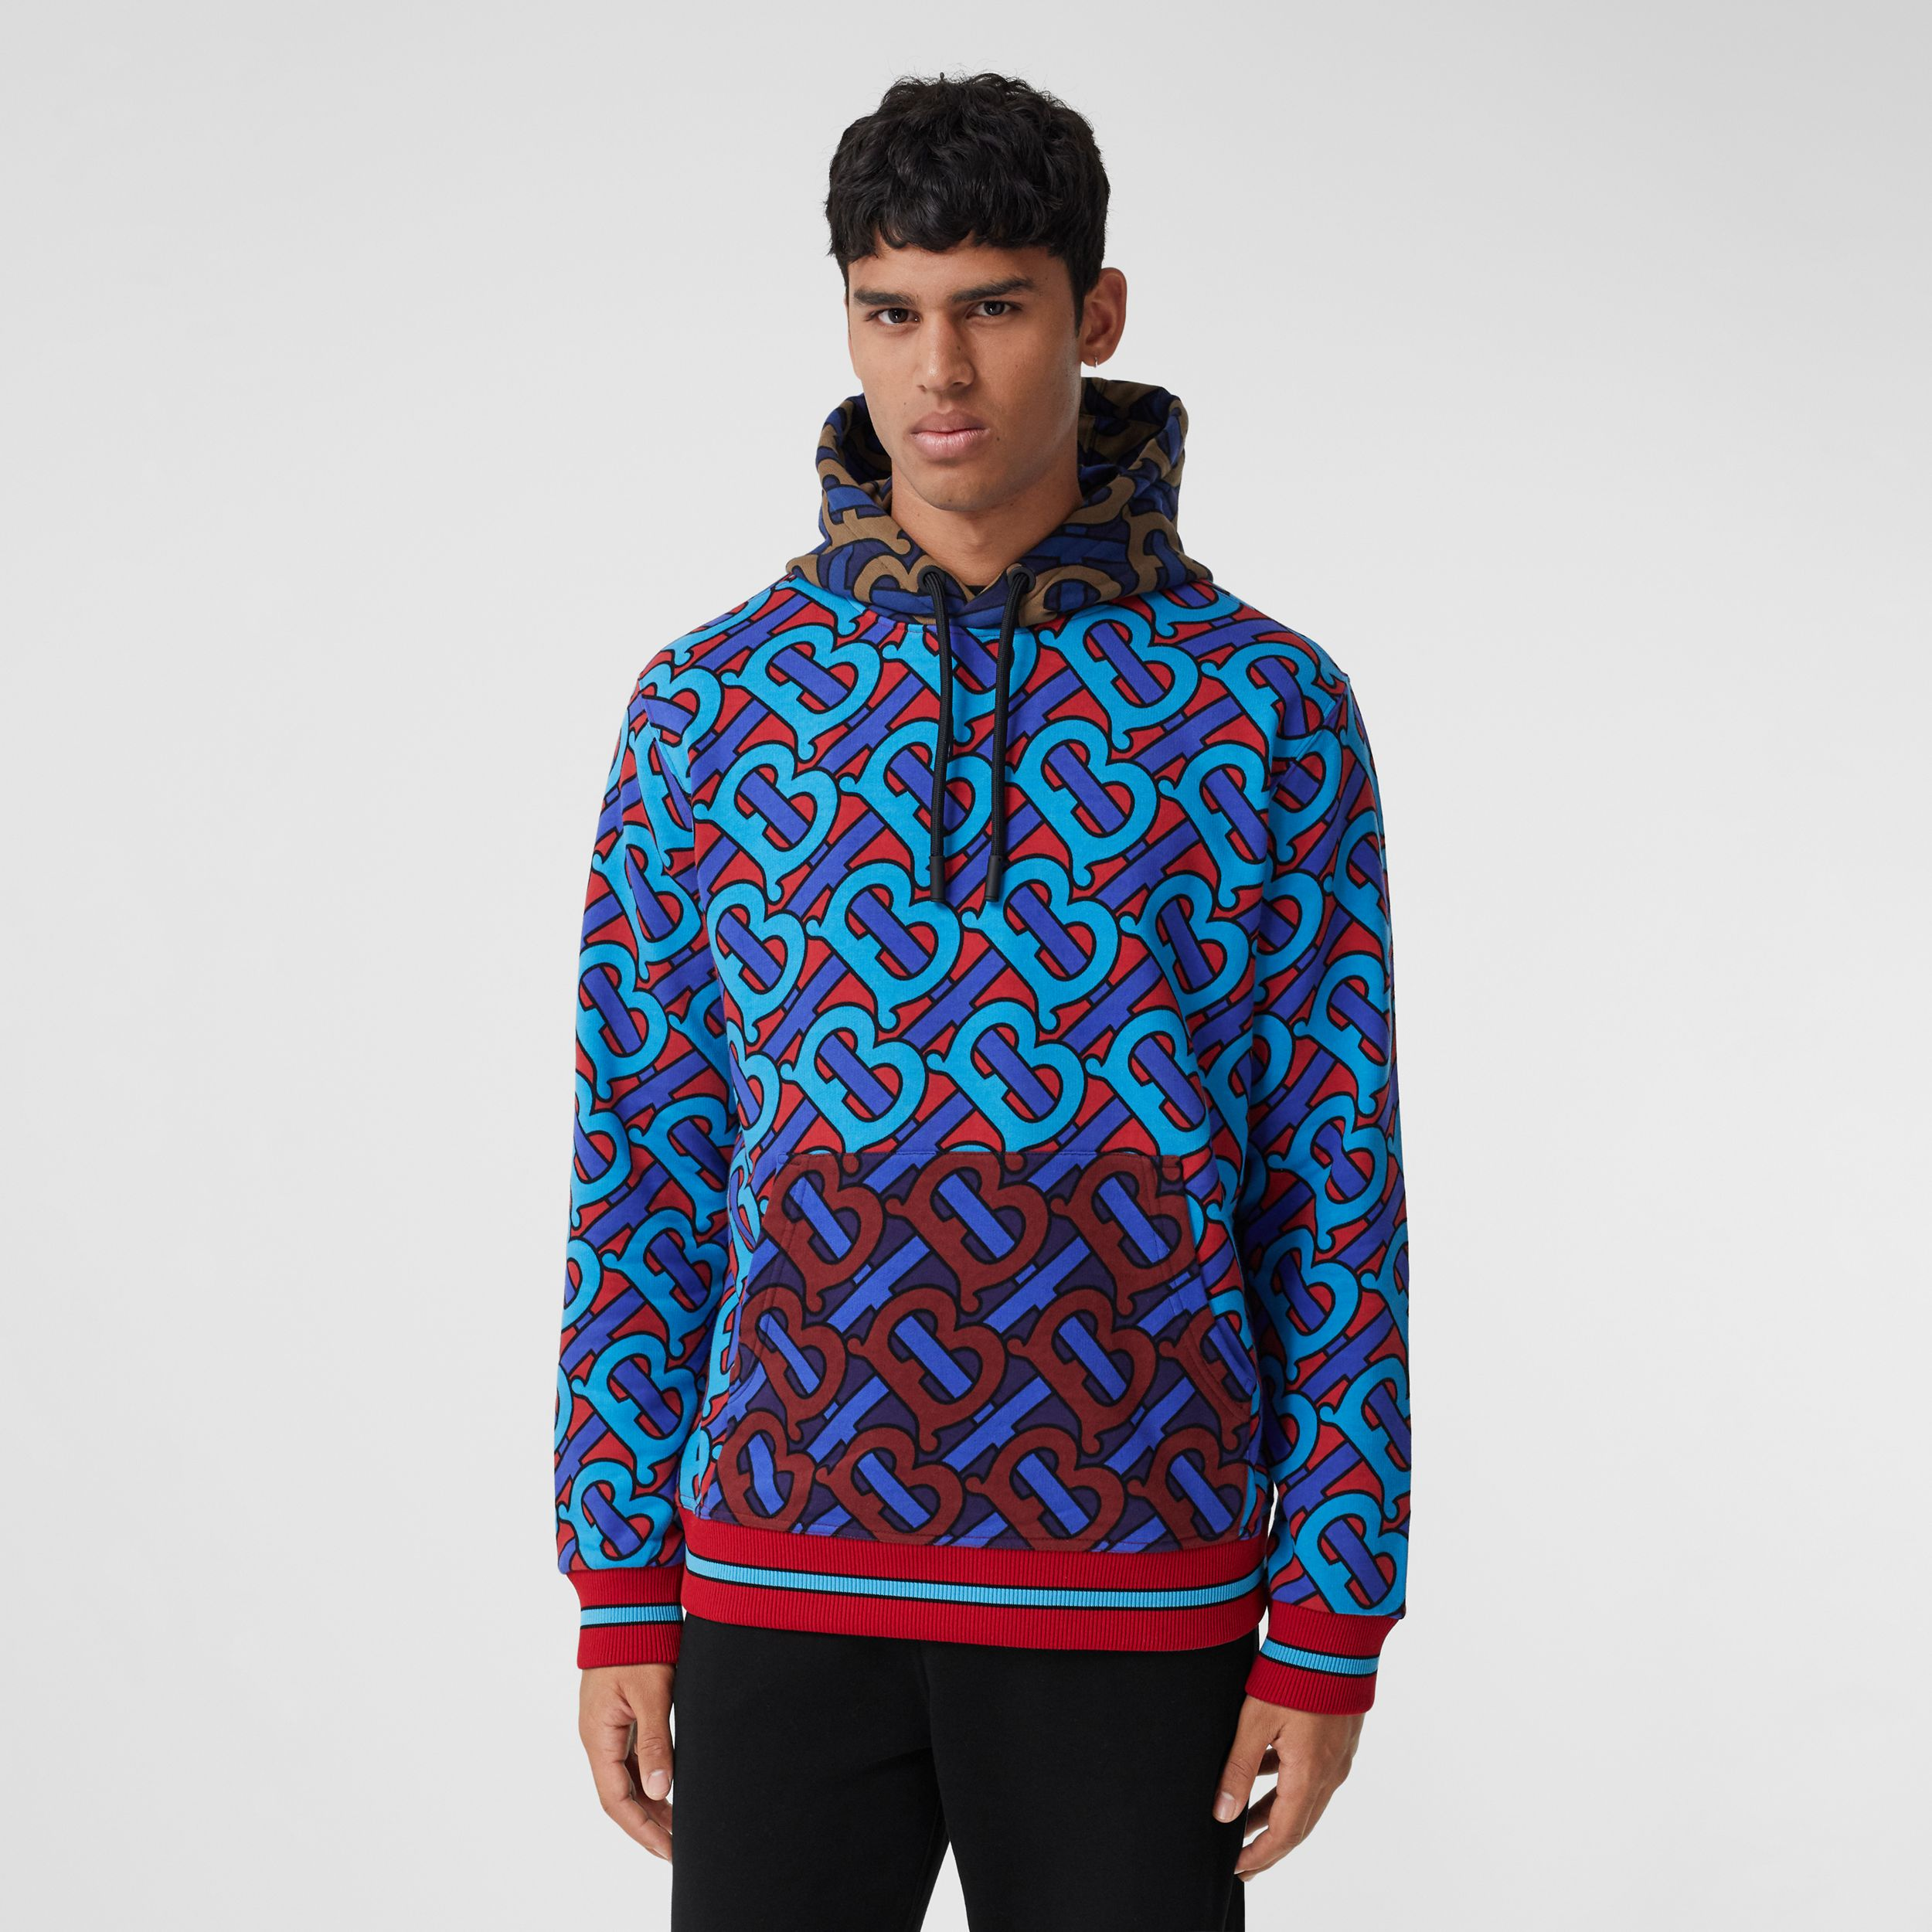 Monogram Print Cotton Hoodie in Bright Cherry Red - Men | Burberry - 1